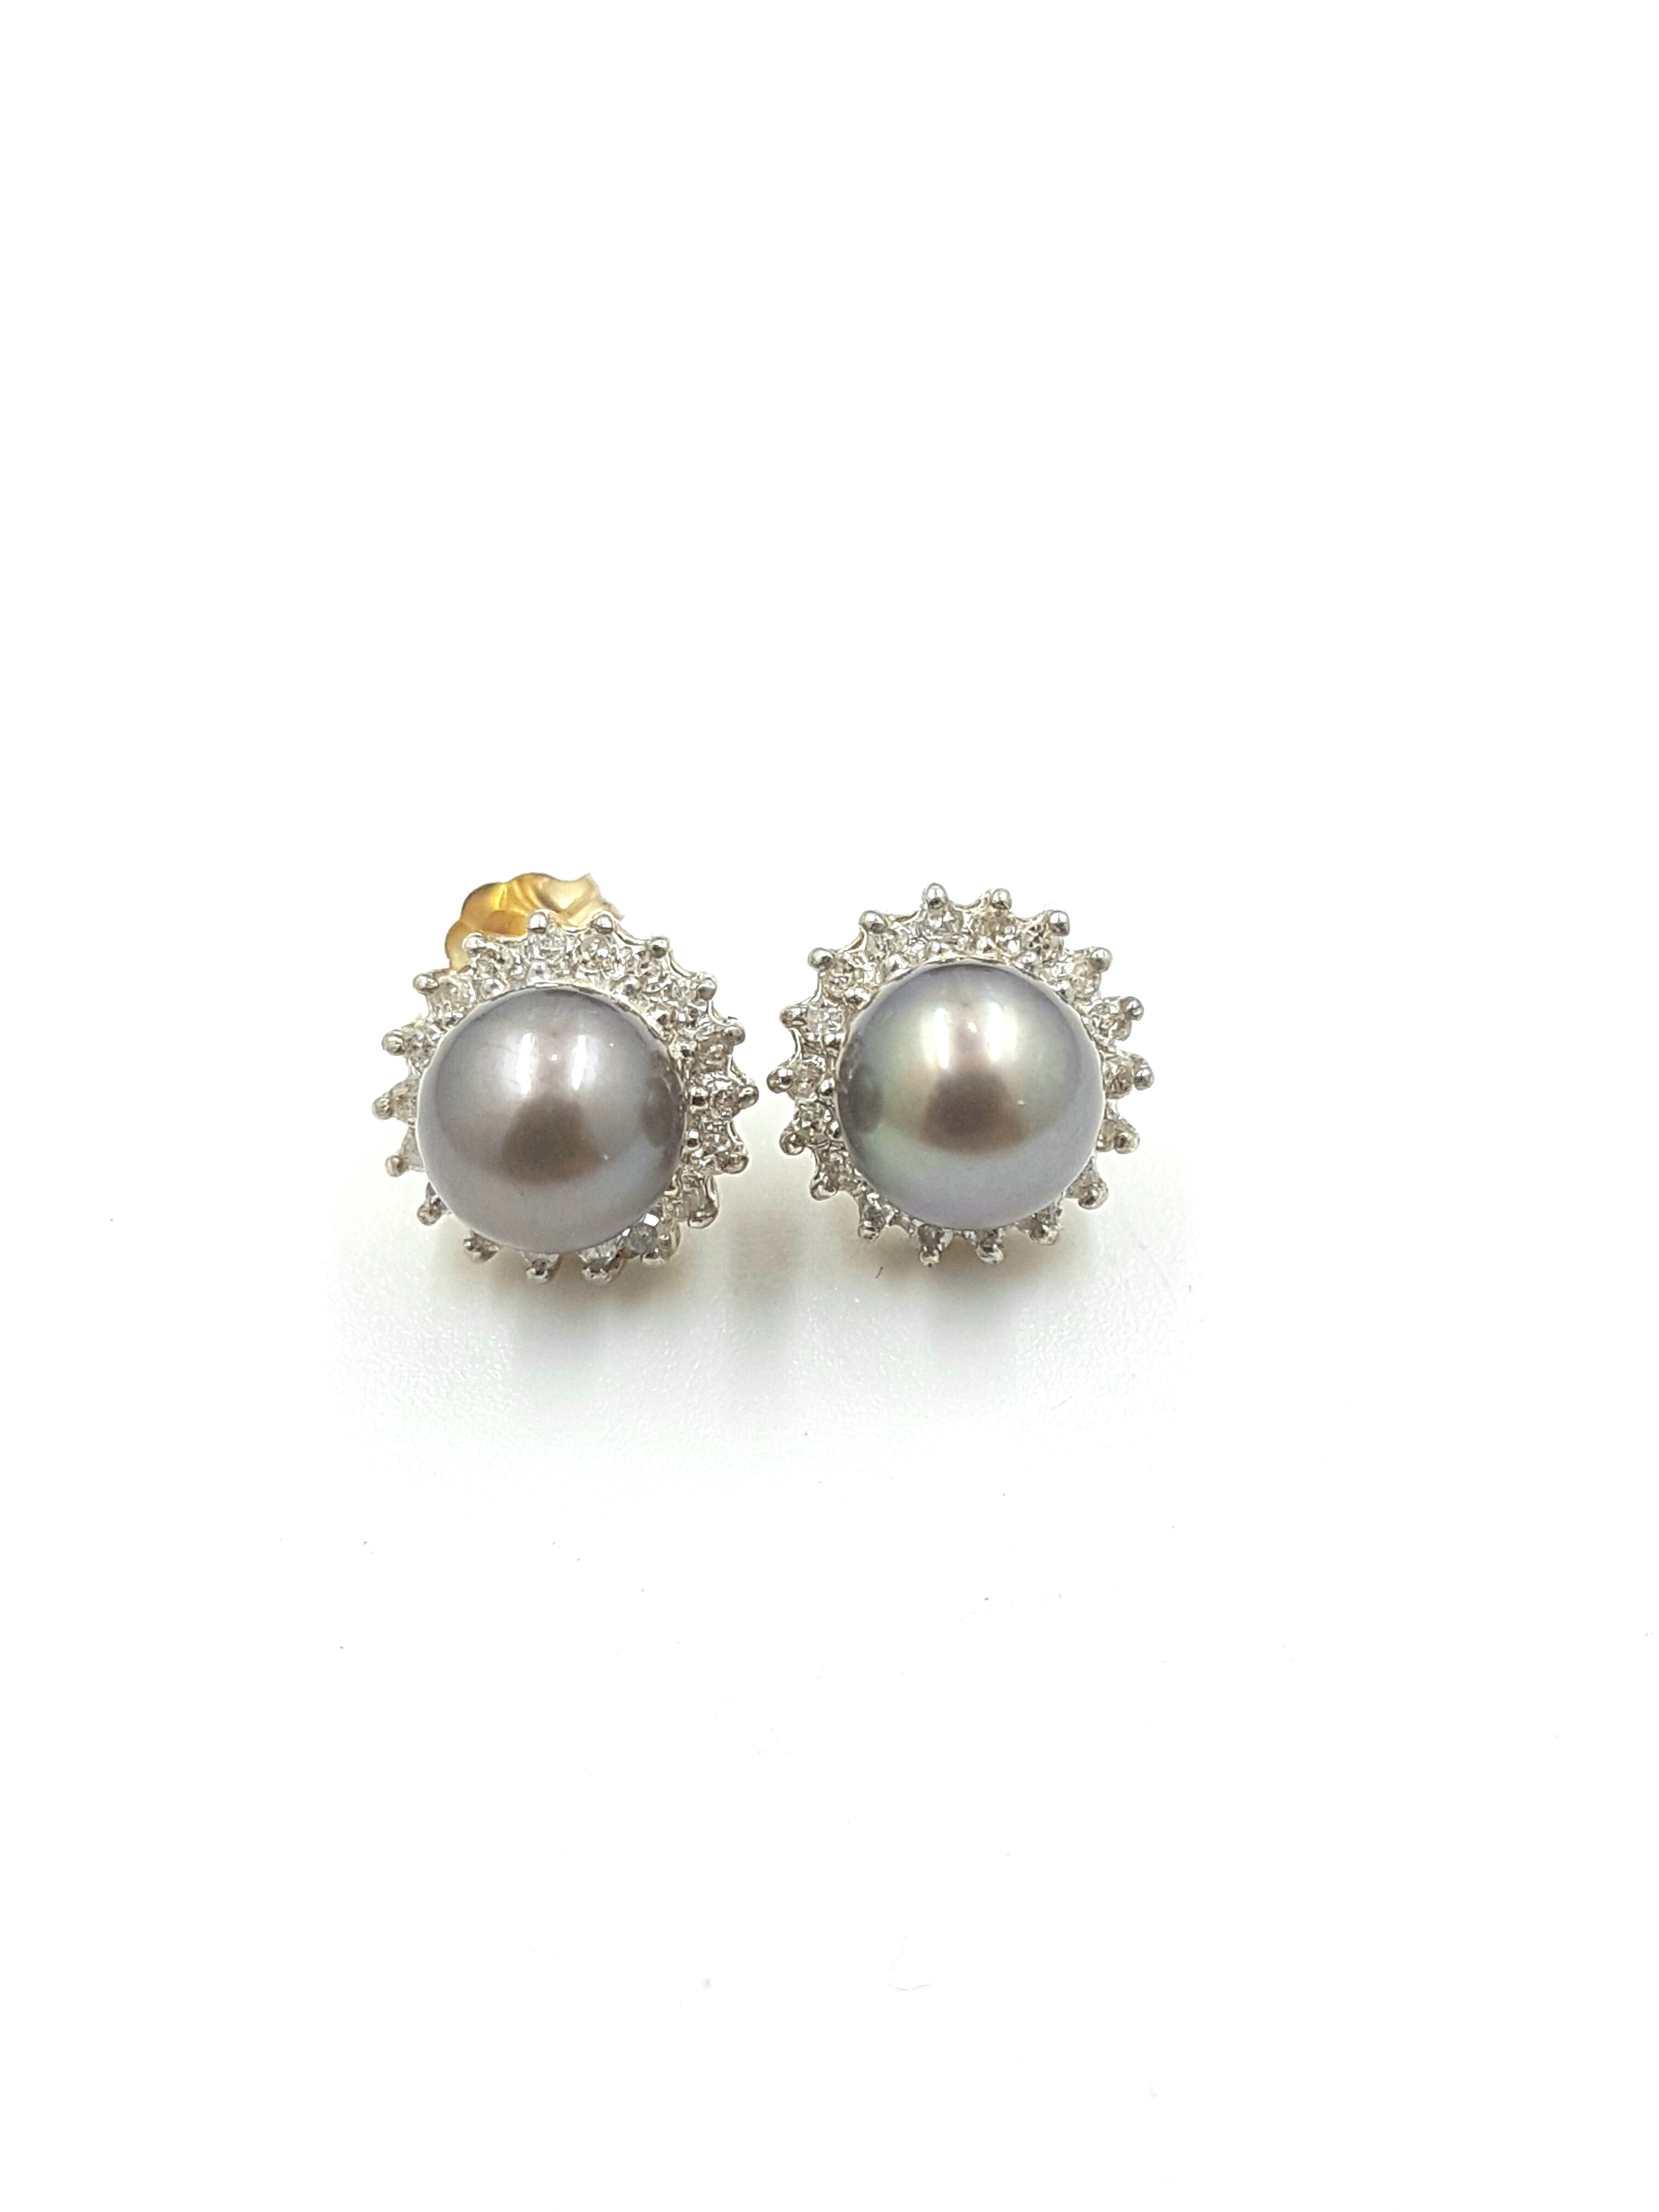 14K White Gold 0.20ct Diamonds with Pearls Regular Price $1495 SALE $550 Ref: FN-E15158